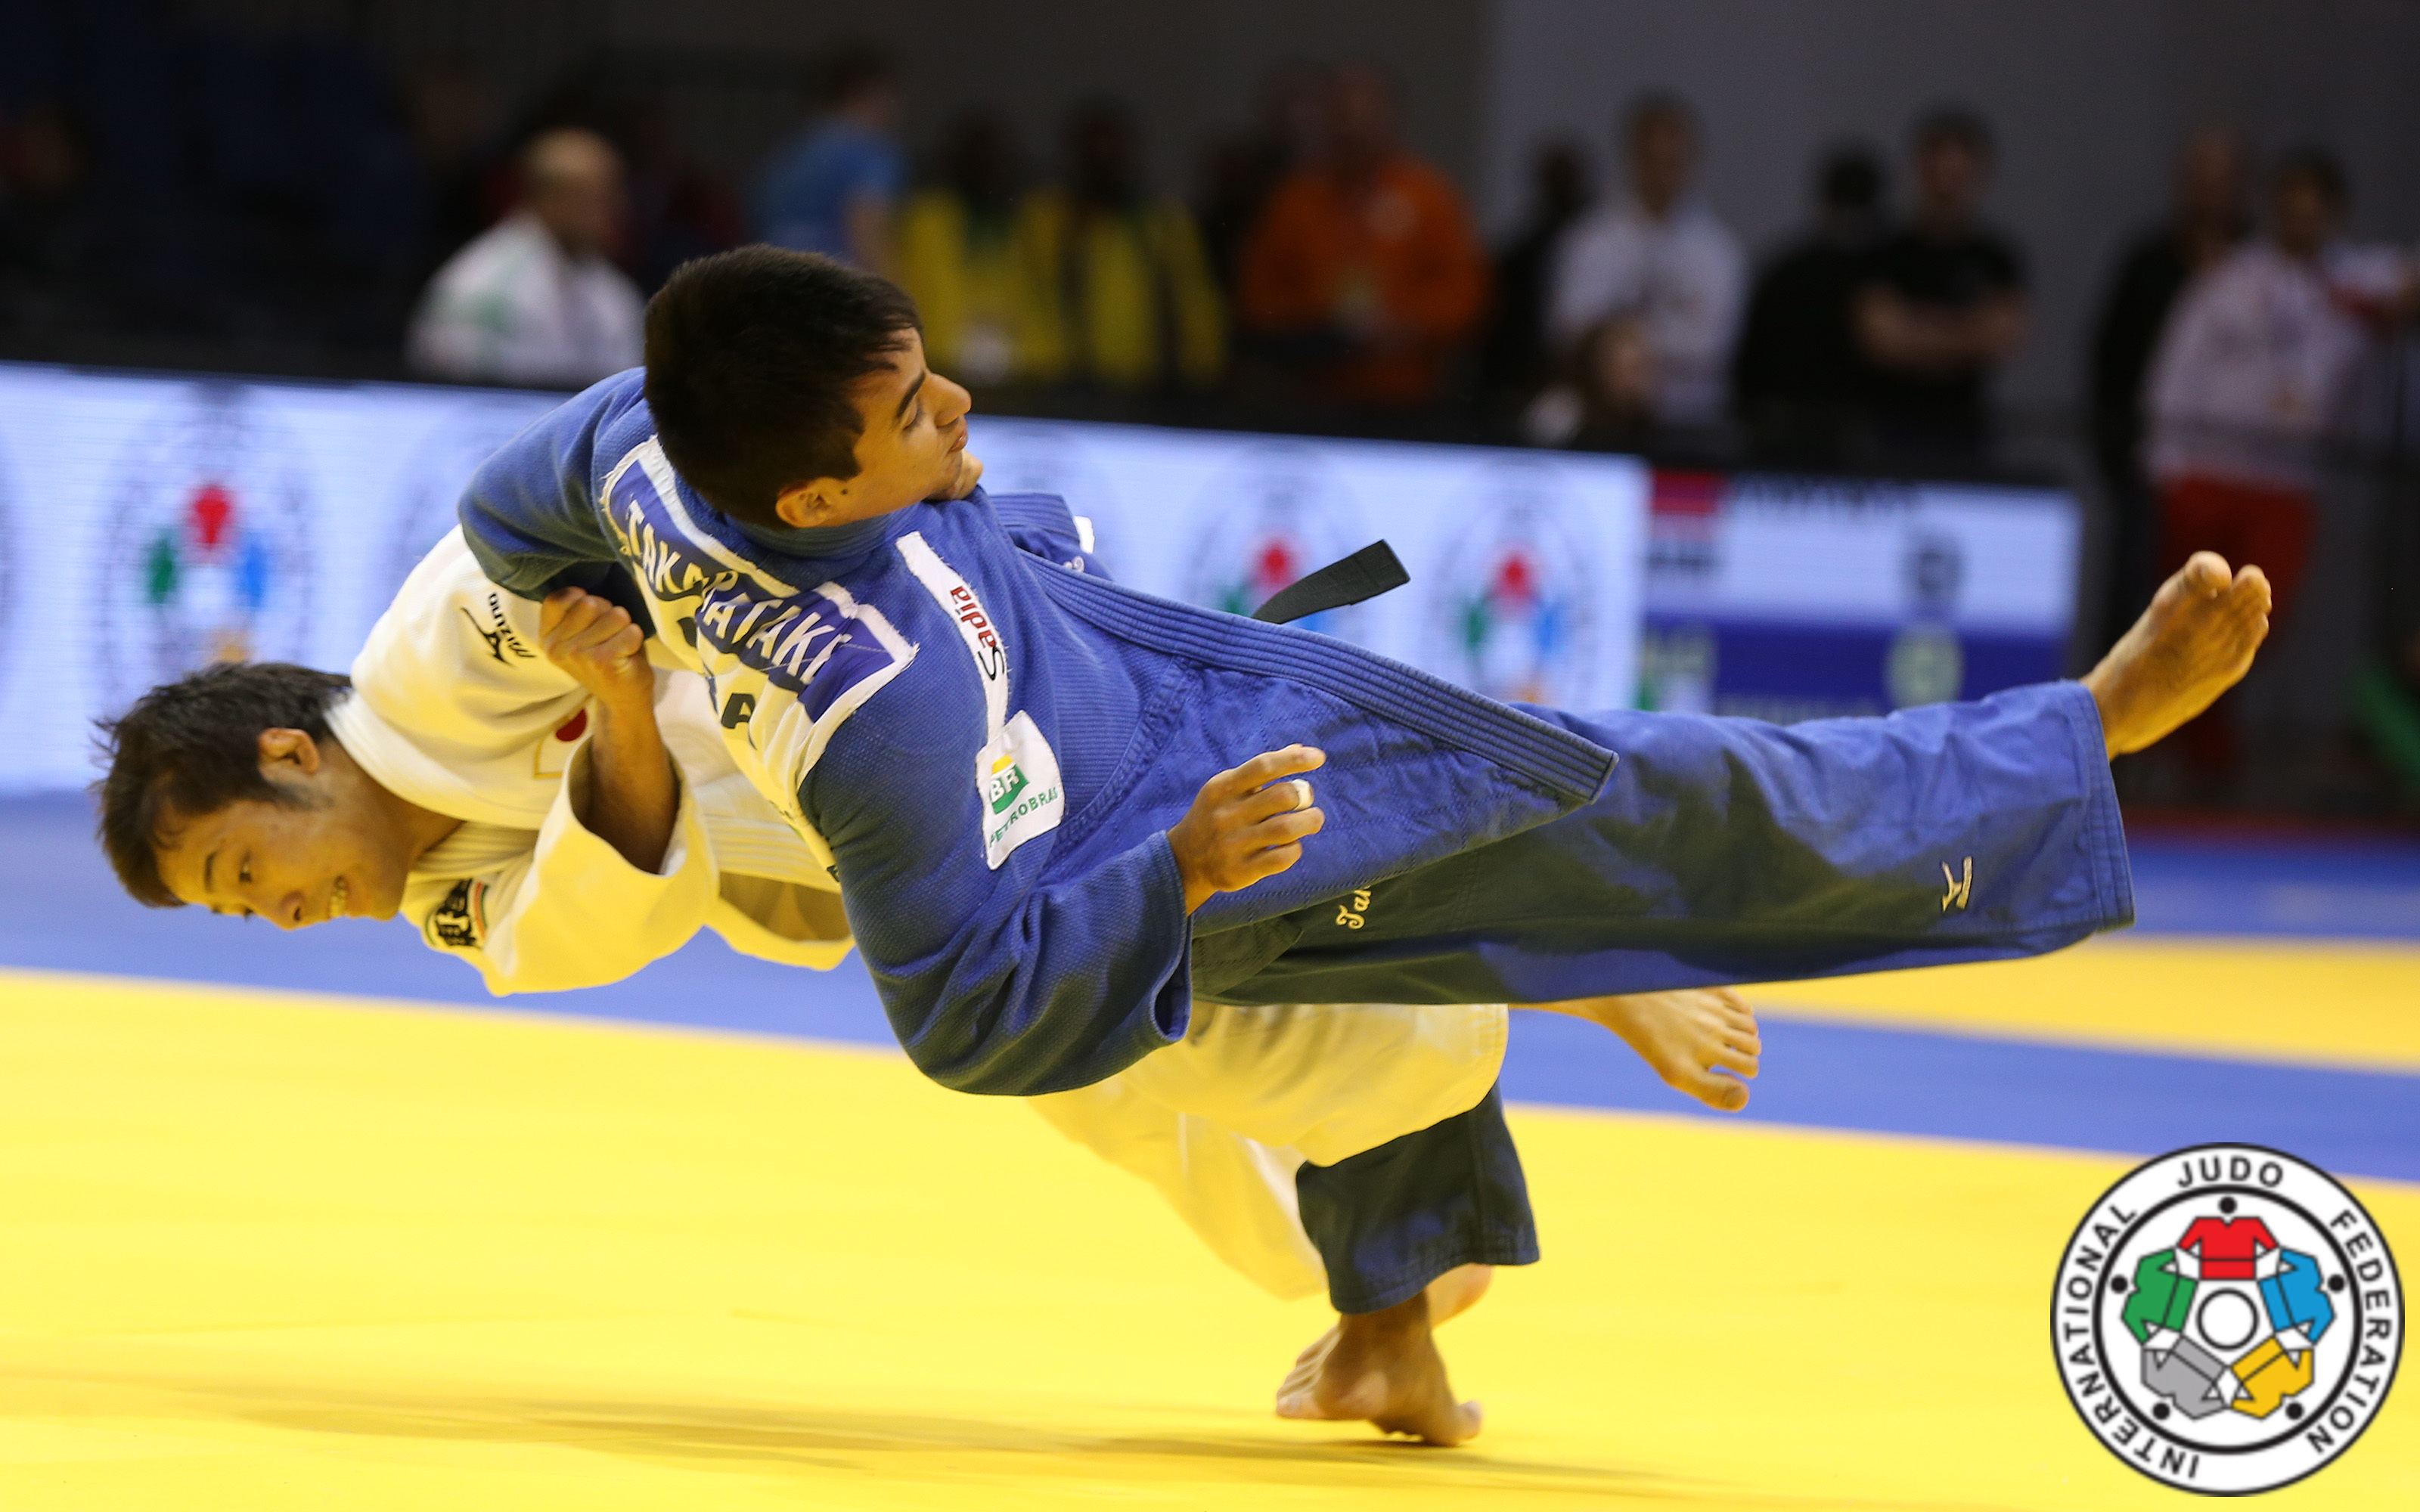 This is judo 1